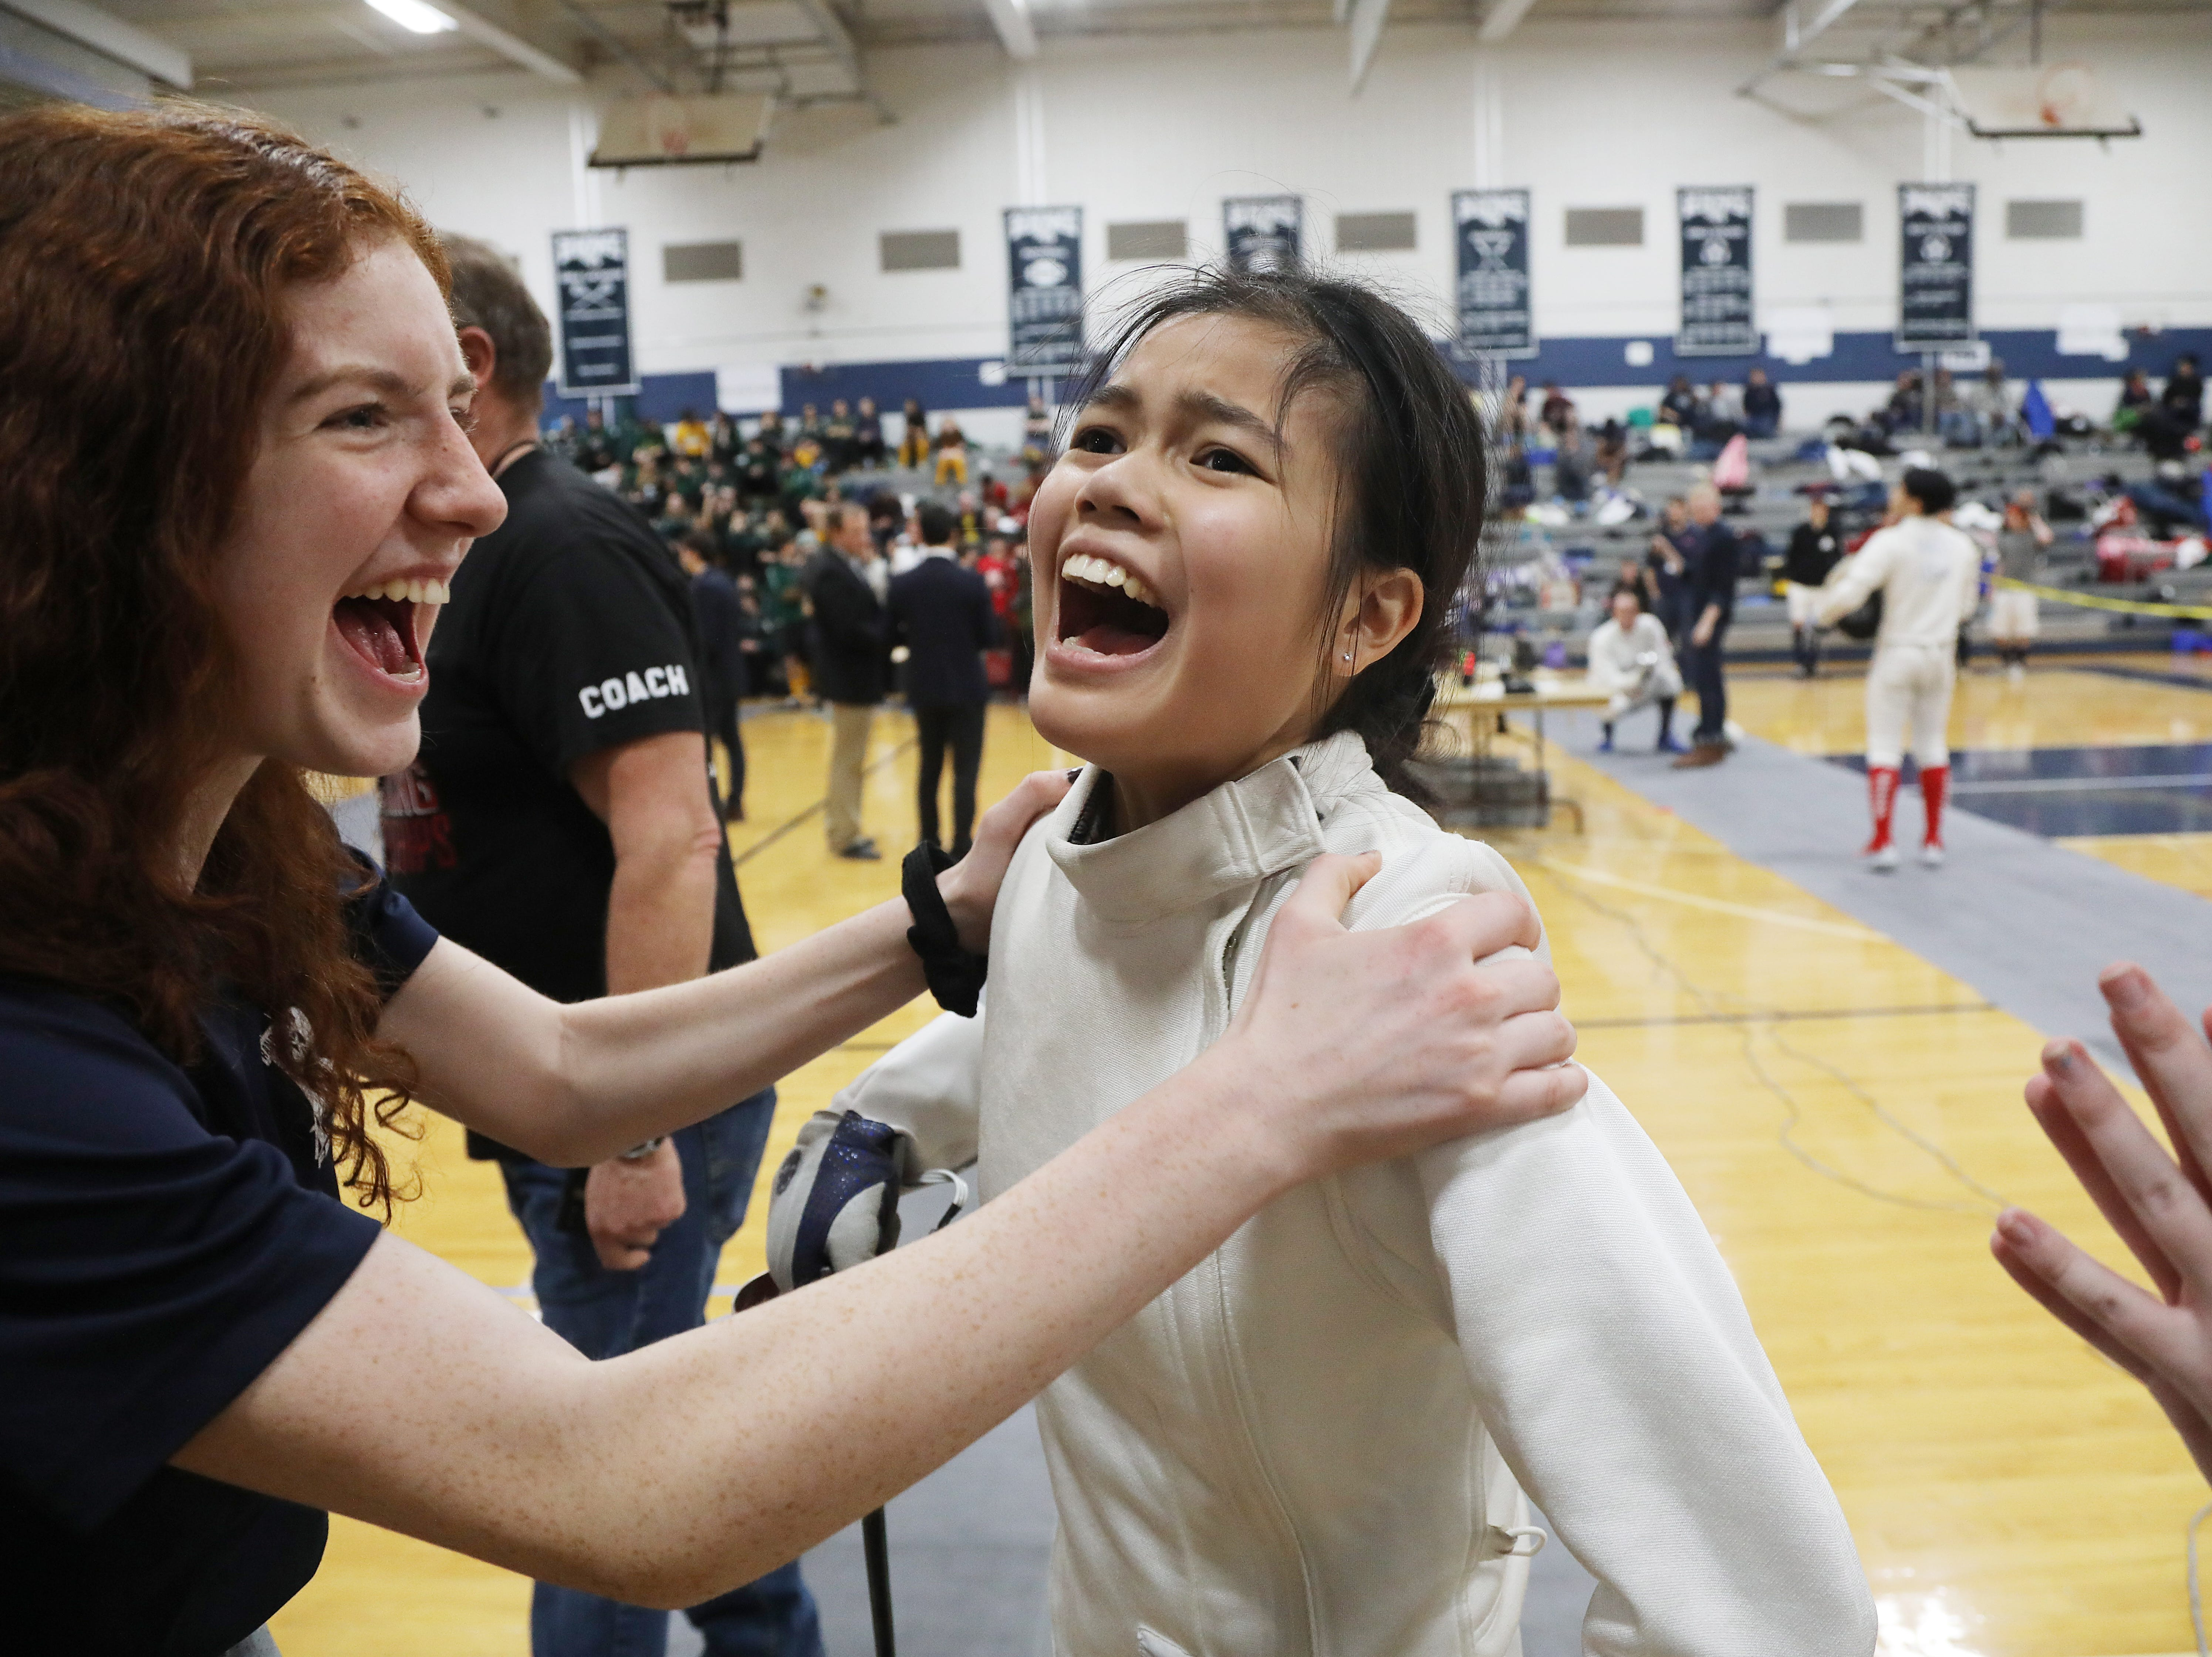 Alison Cordero of Randolph after she won a round in the epee final.